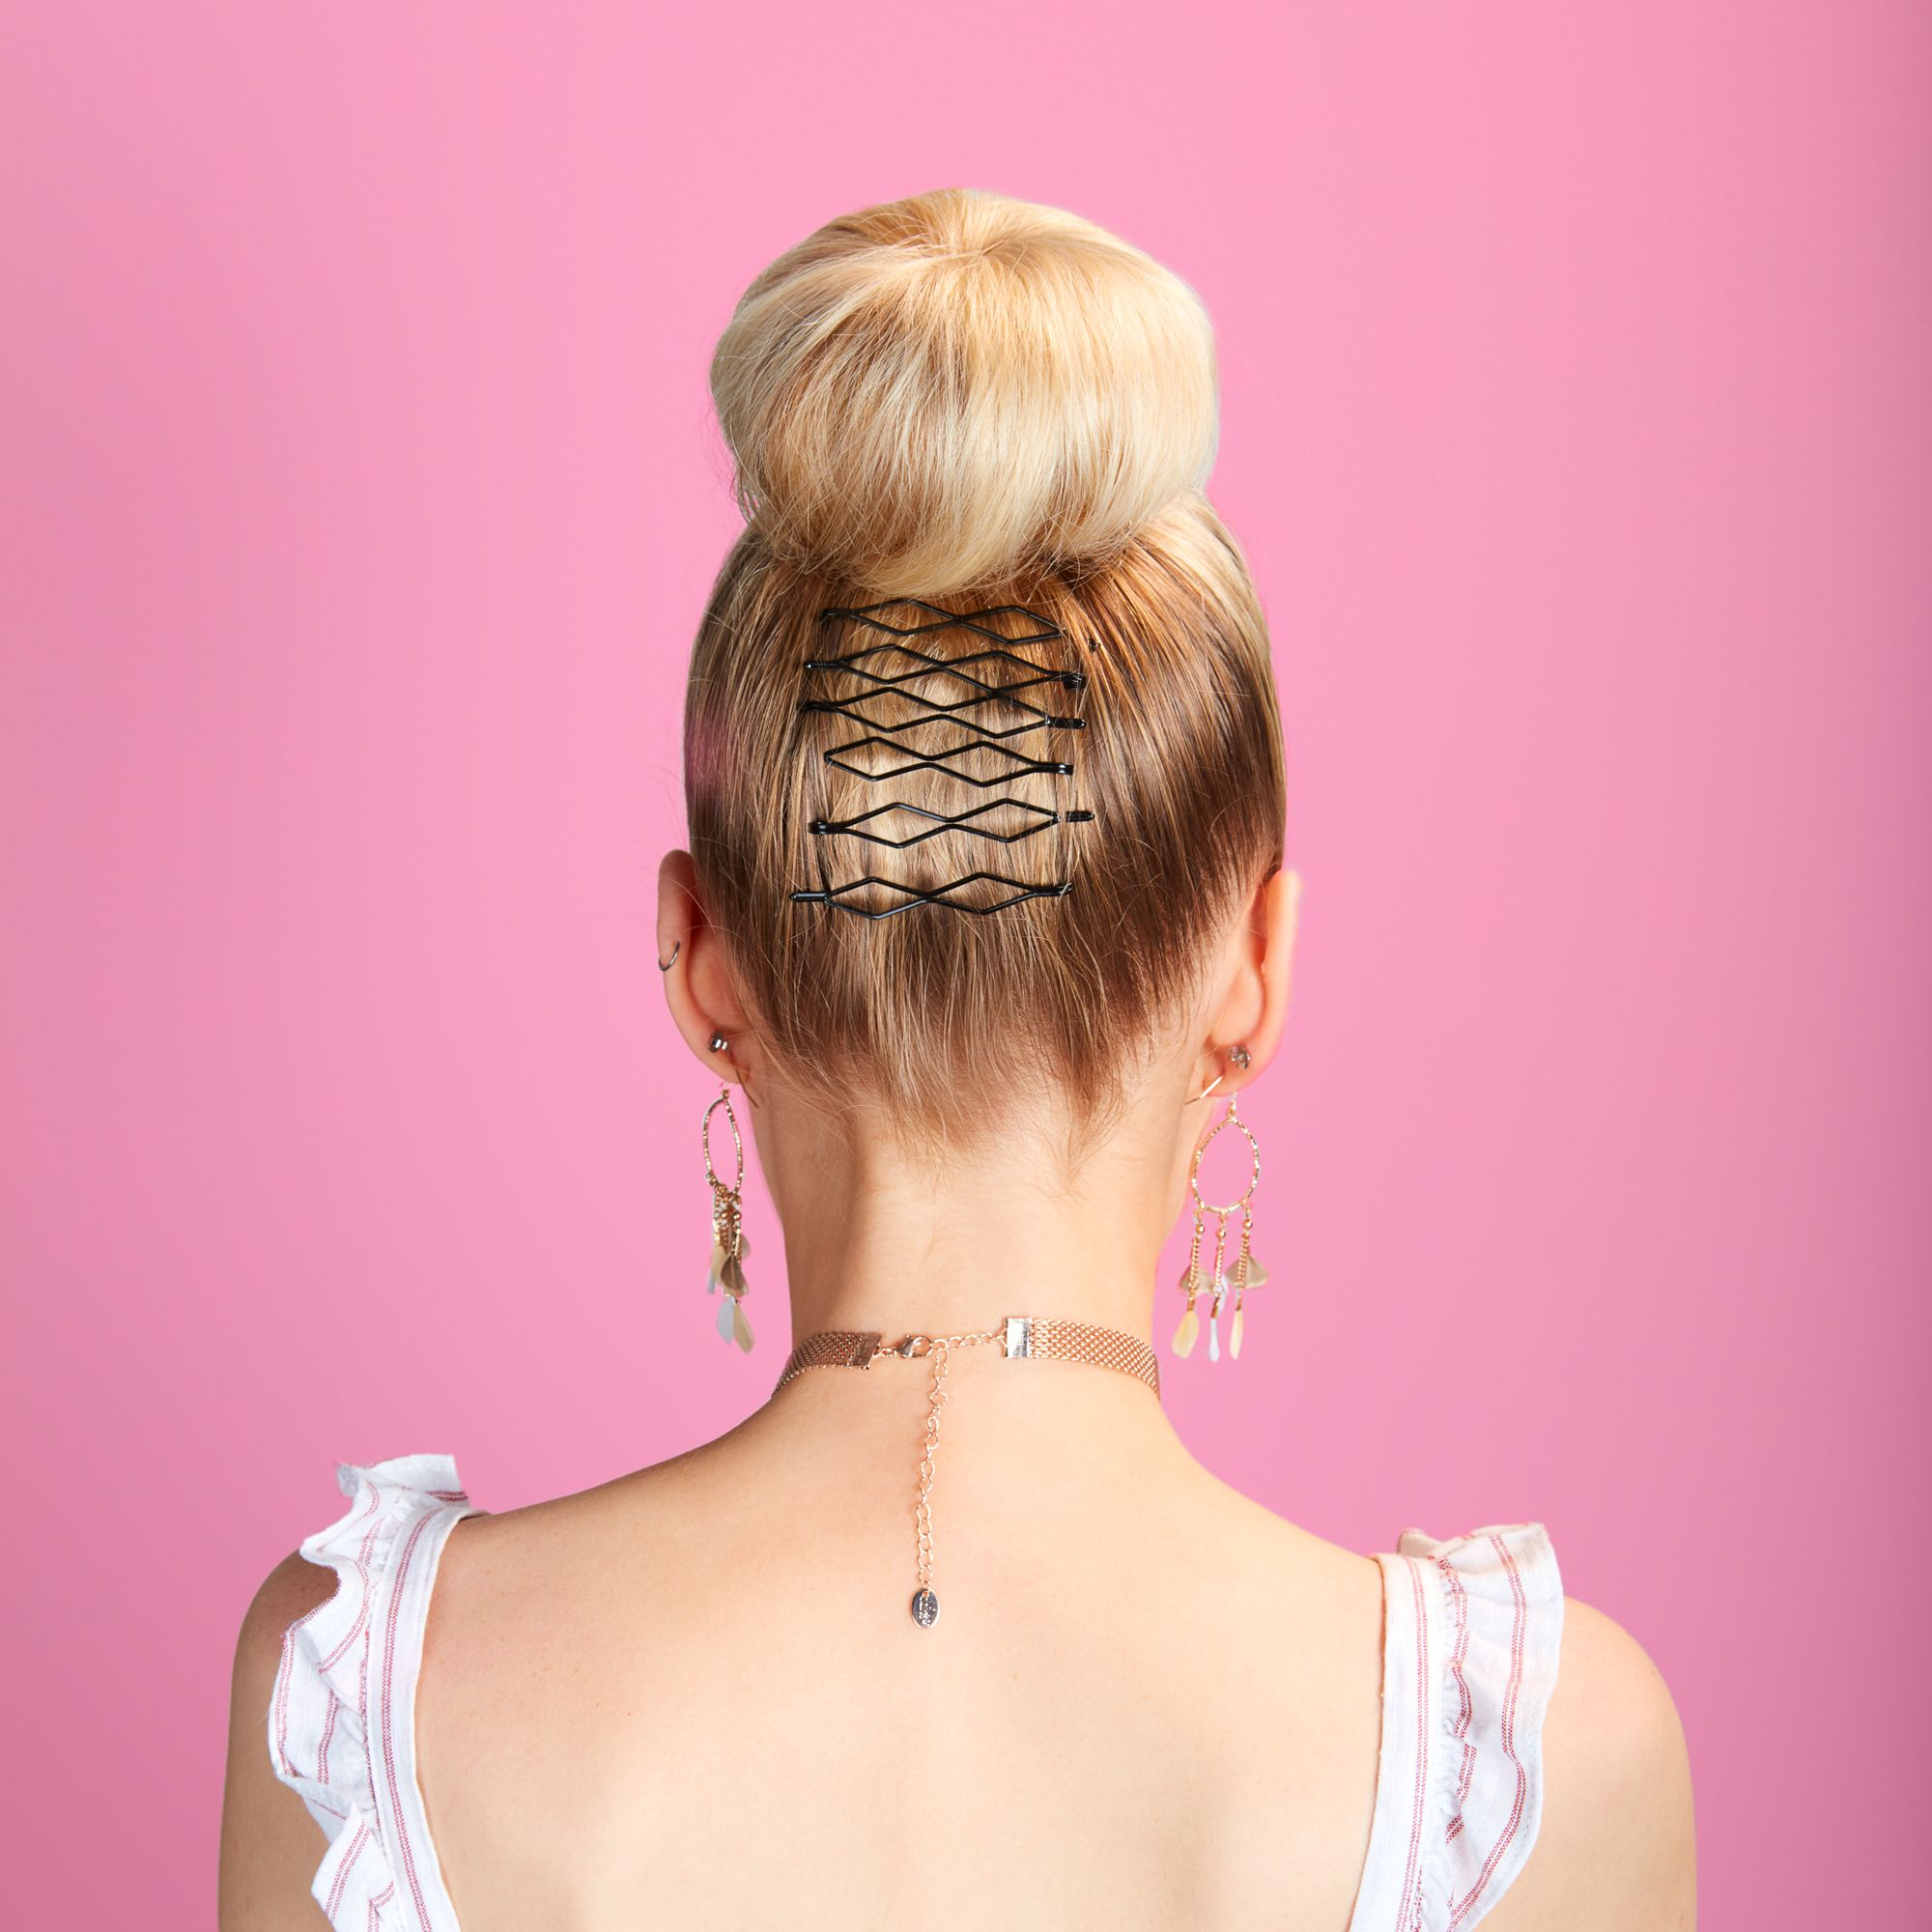 Add some cute clips to your bun for standout style!! Shop hair